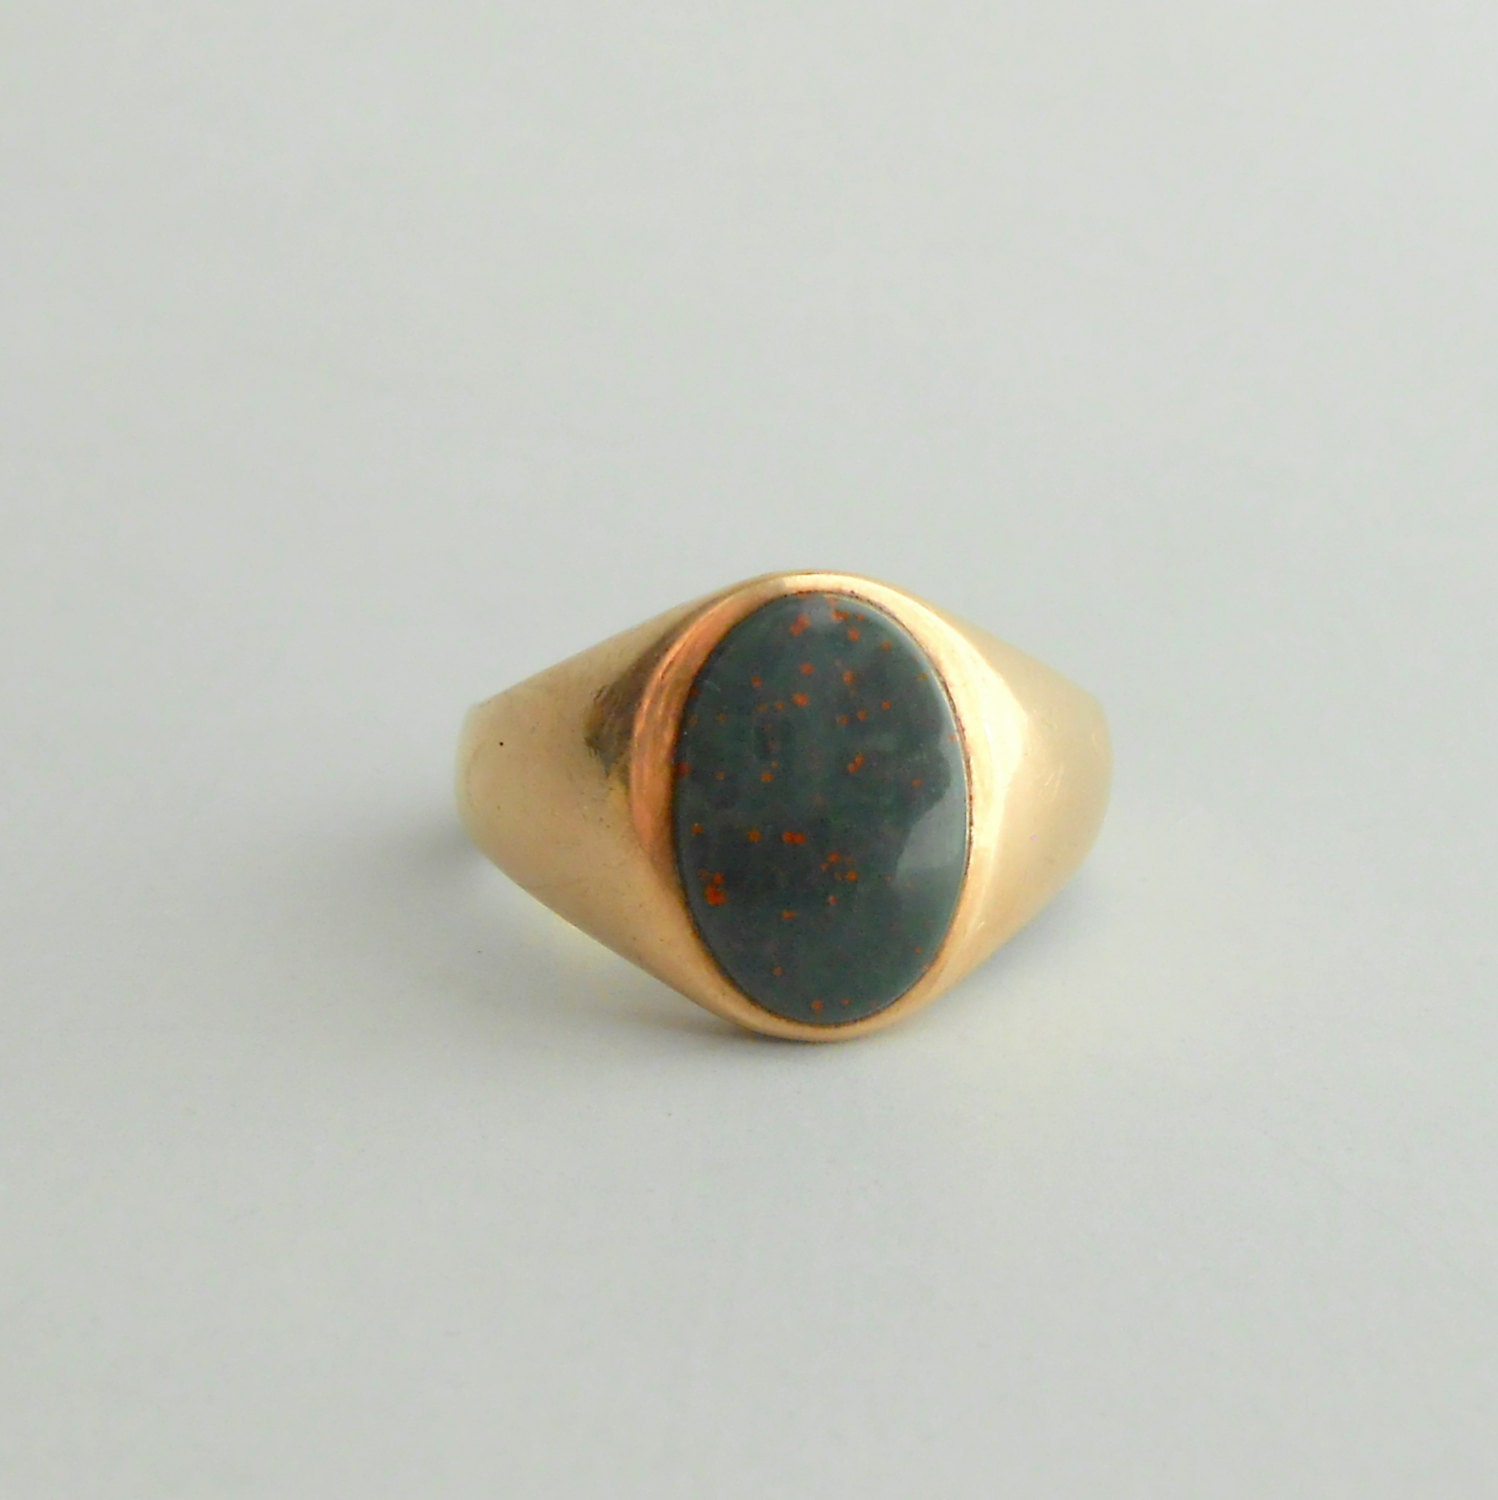 Bloodstone Signet Ring Cost